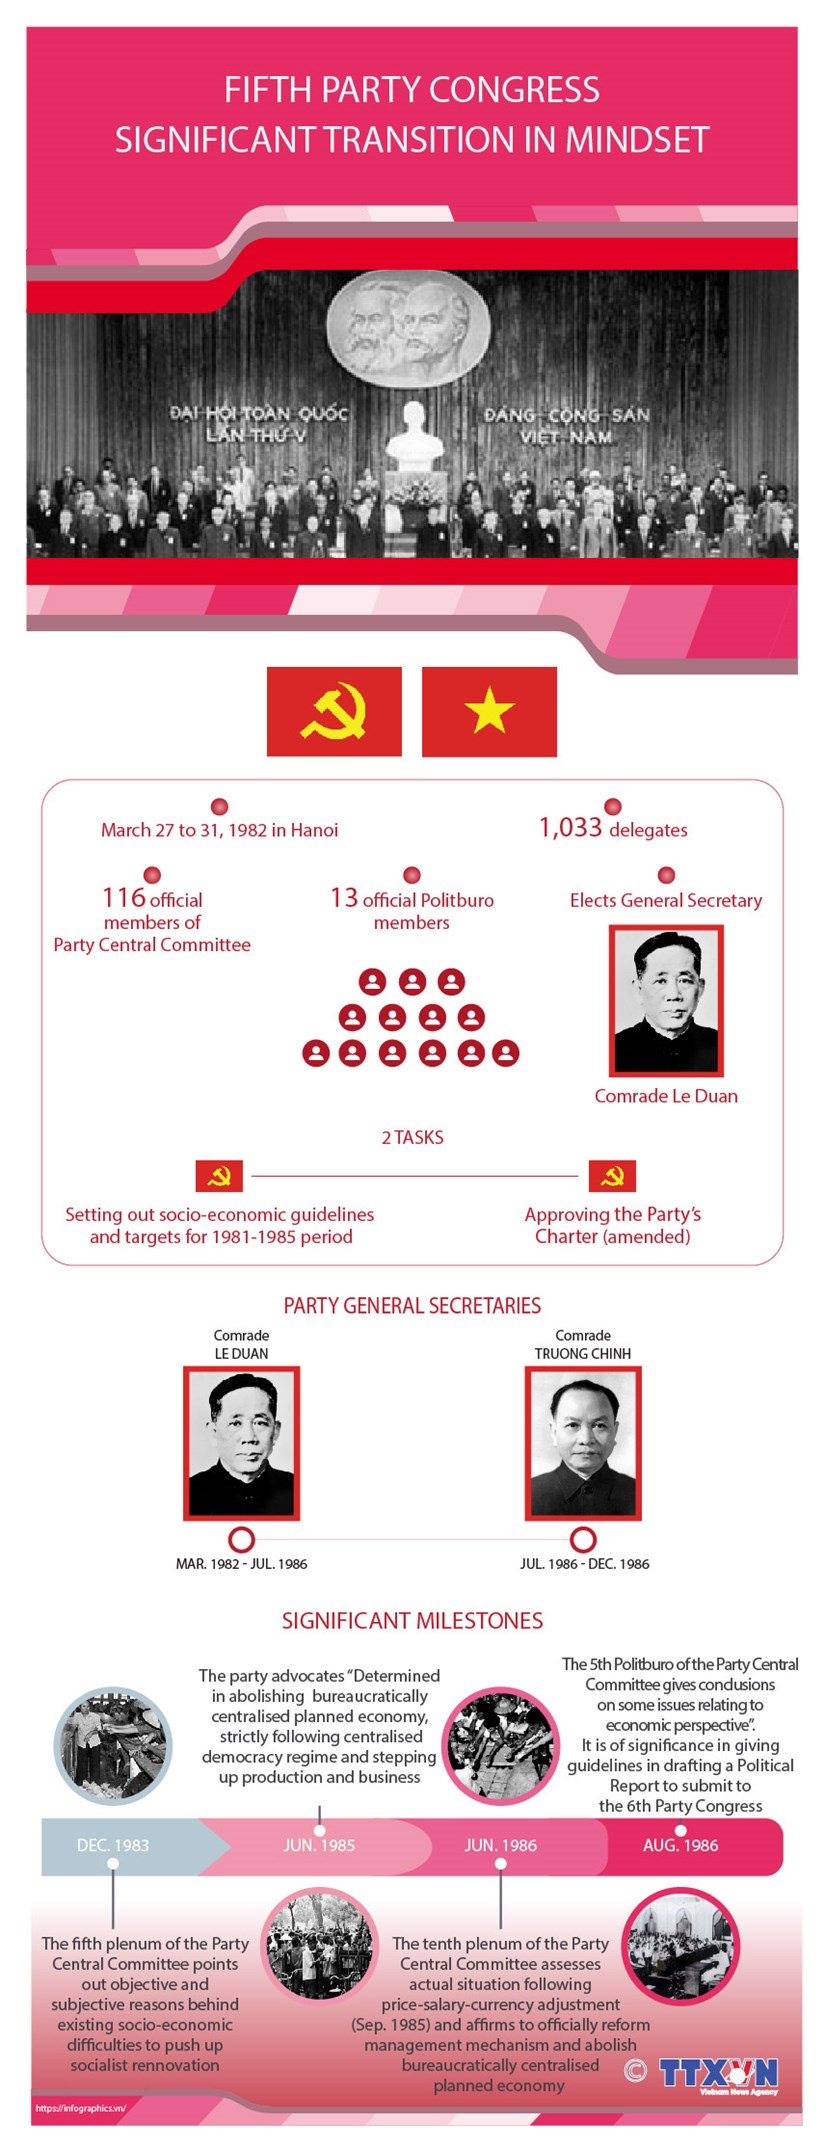 Fifth Party Congress: Significant transition in mindset hinh anh 1